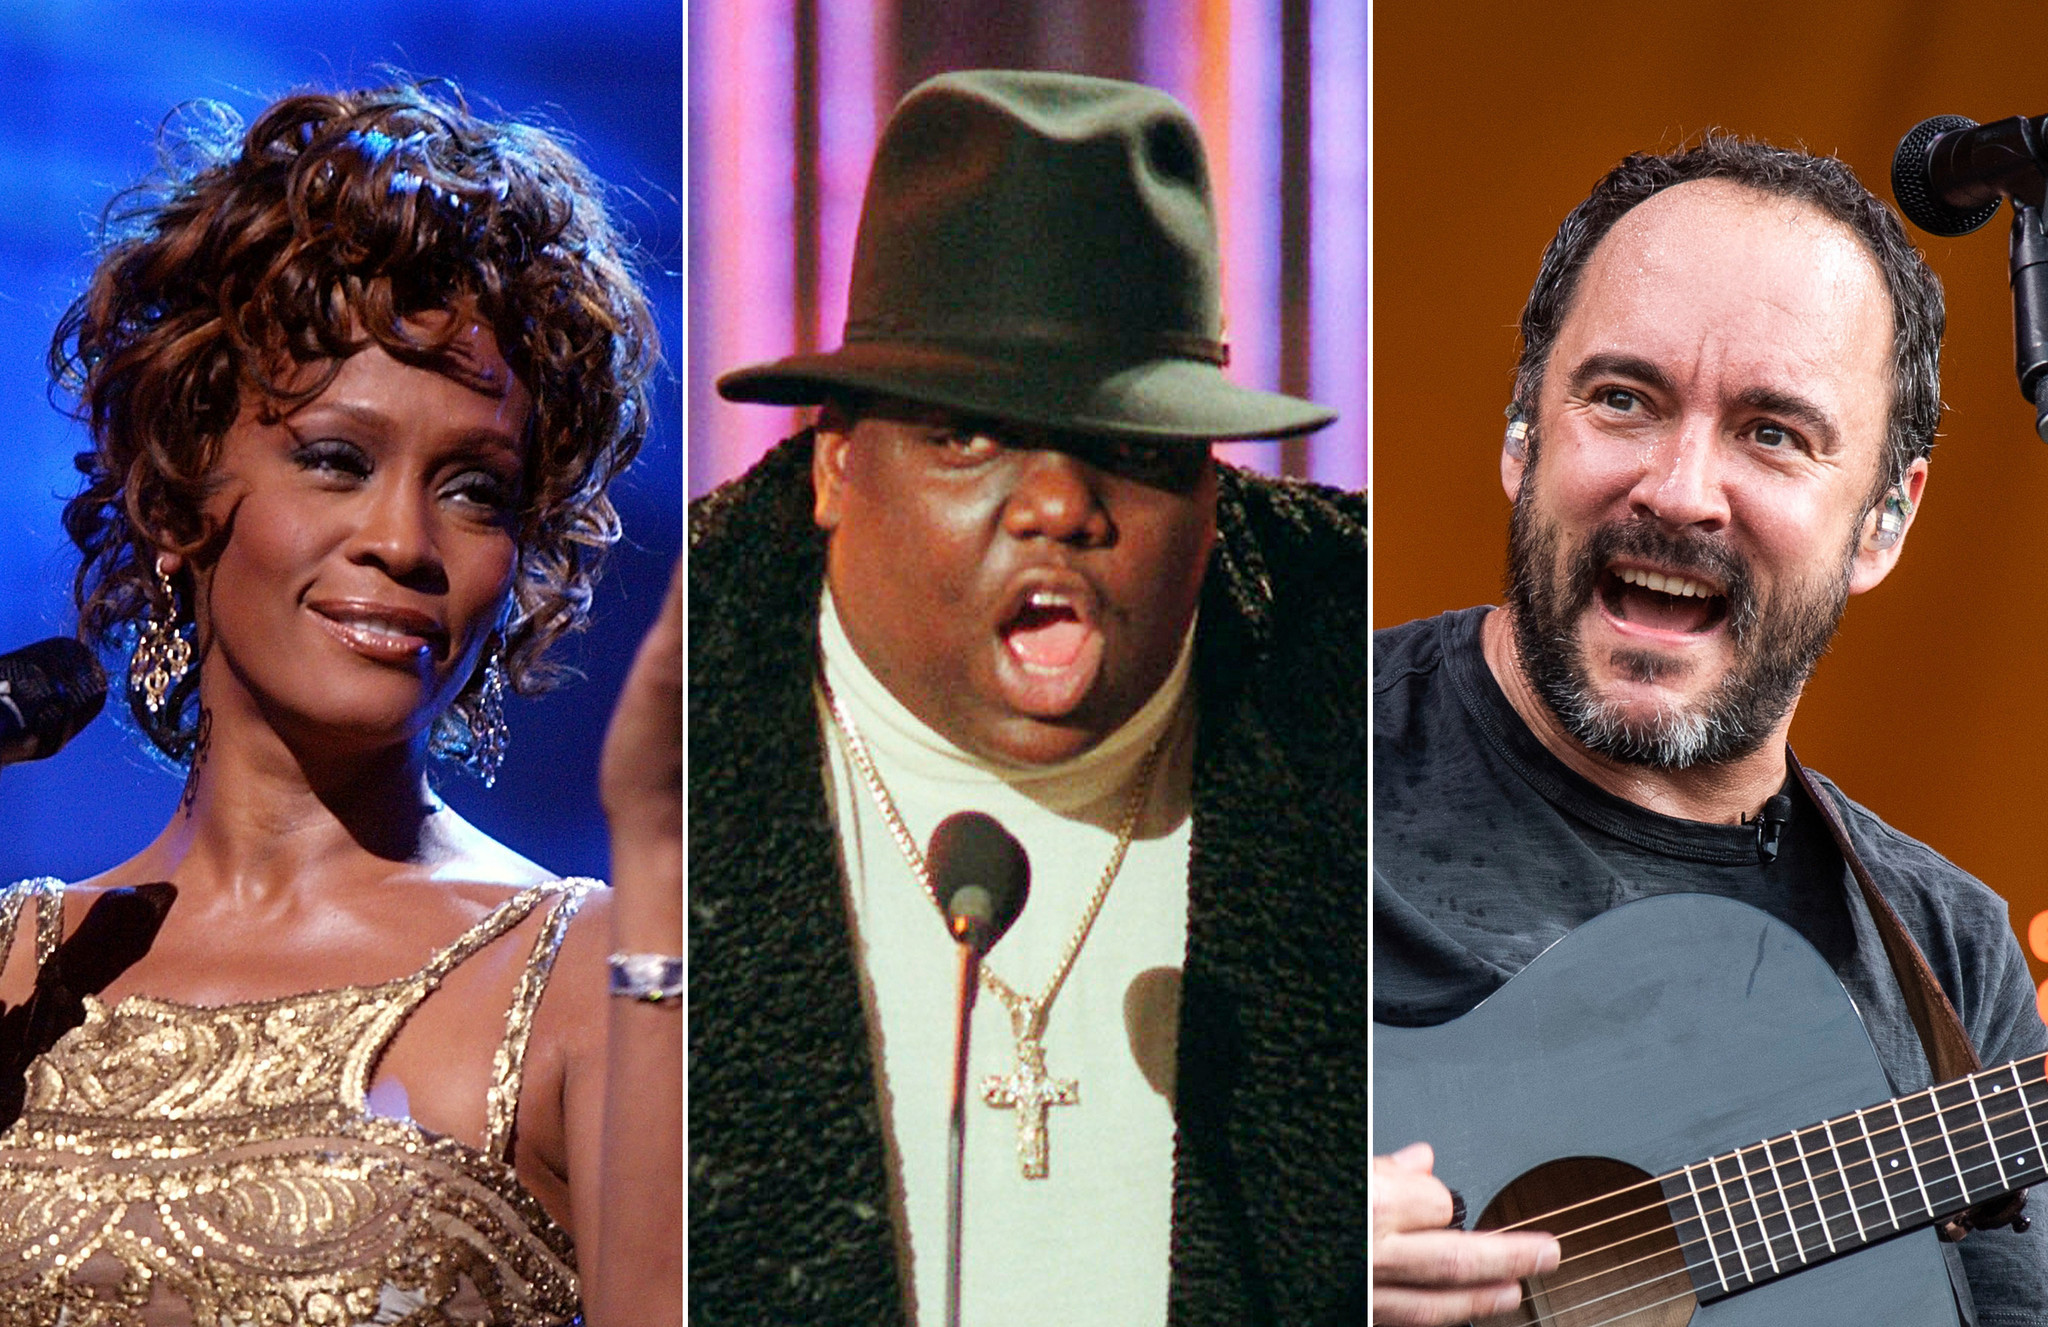 Whitney Houston, Notorious B.I.G. and Dave Matthews Band among finalists for Rock and Roll Hall of Fame inductions